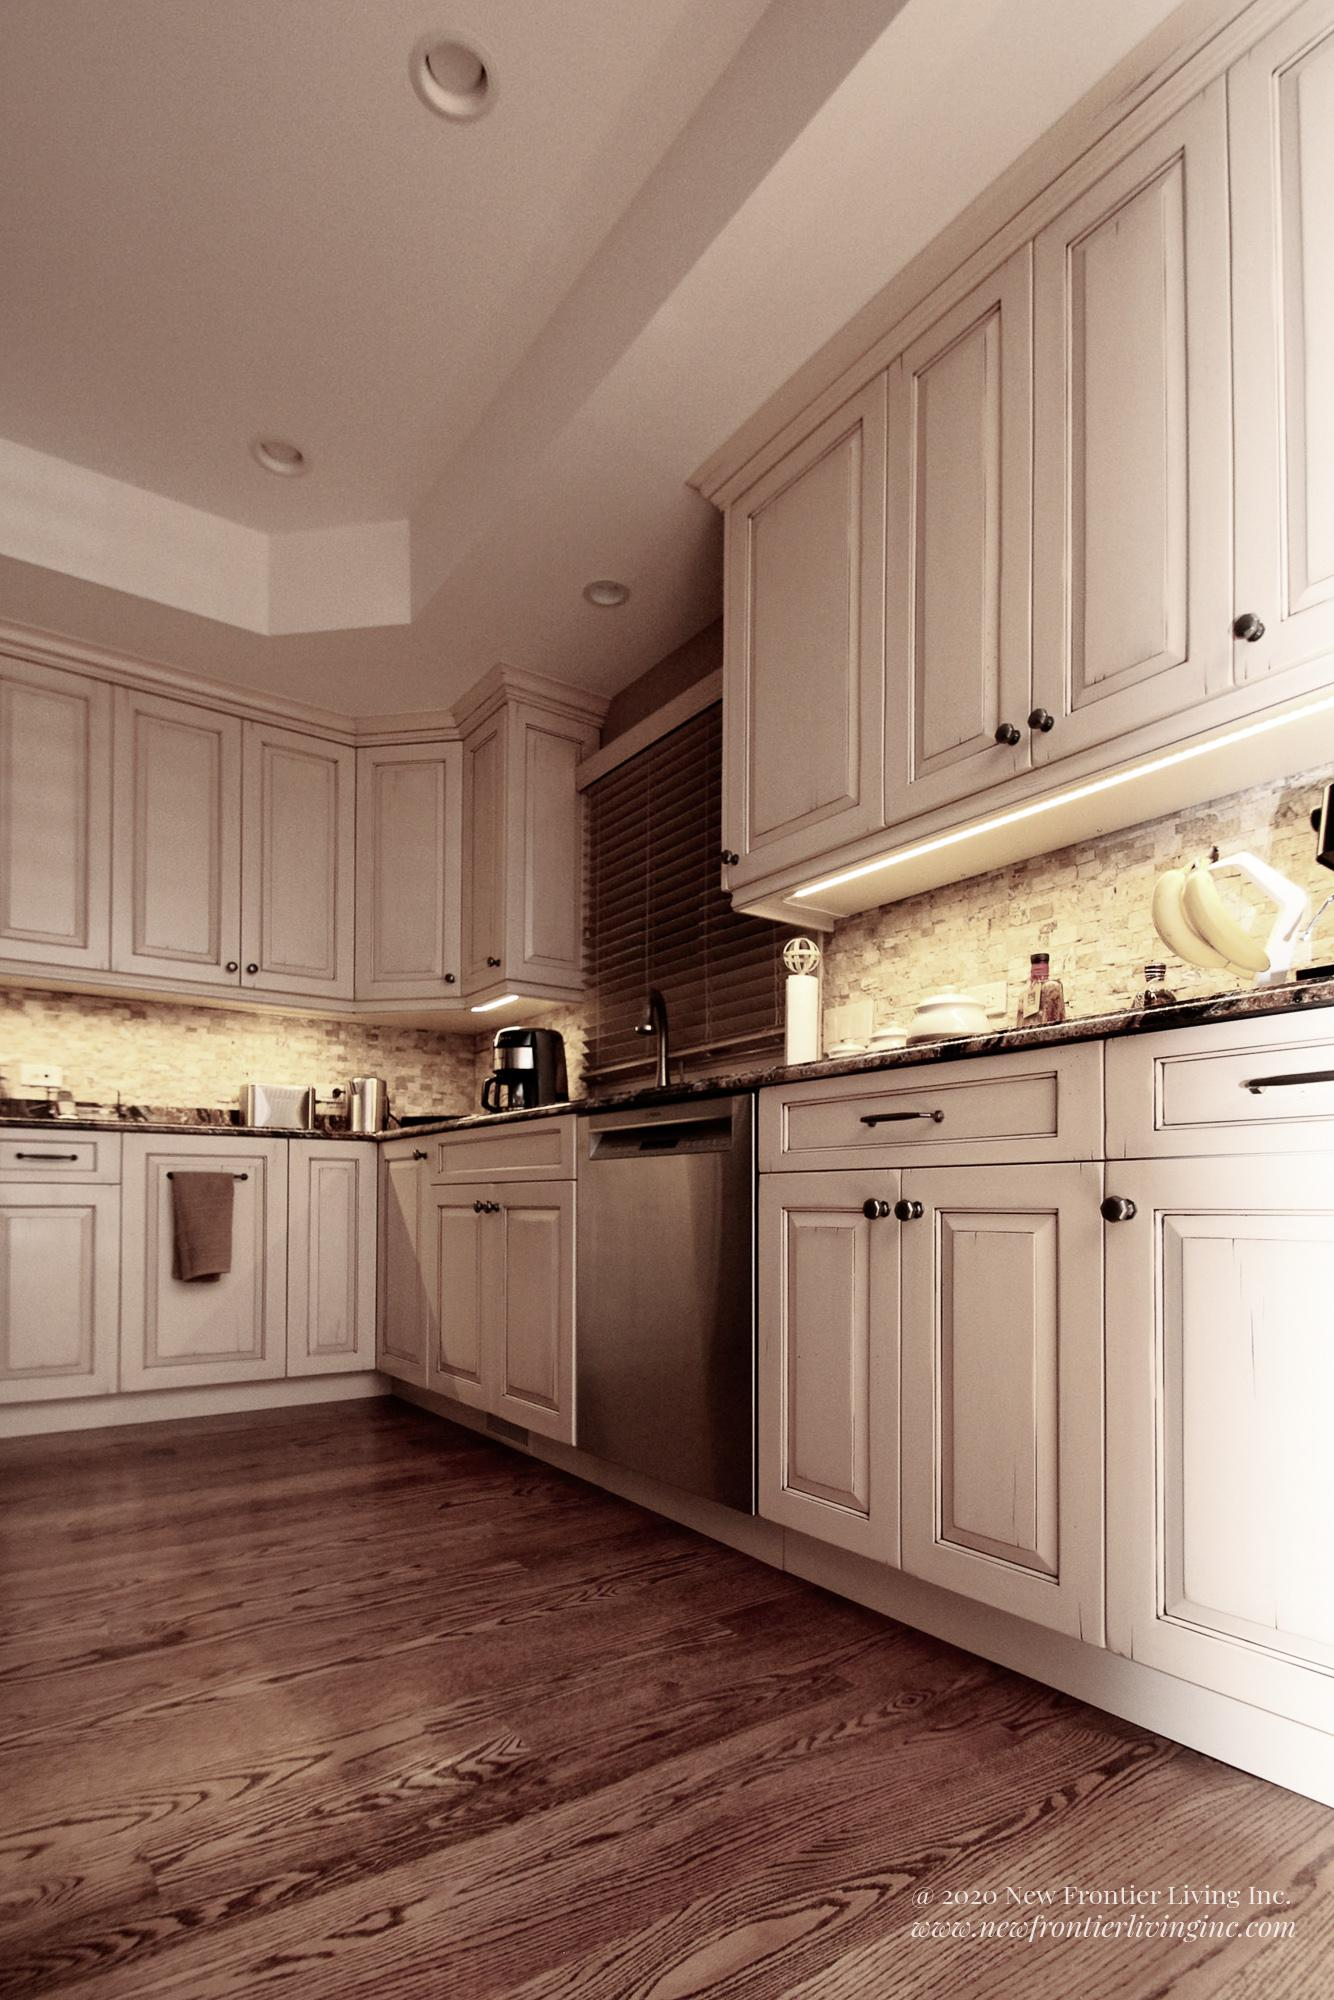 Custom light brown kitchen lower cabinets, dishwasher and small appliances on the countertop close-up